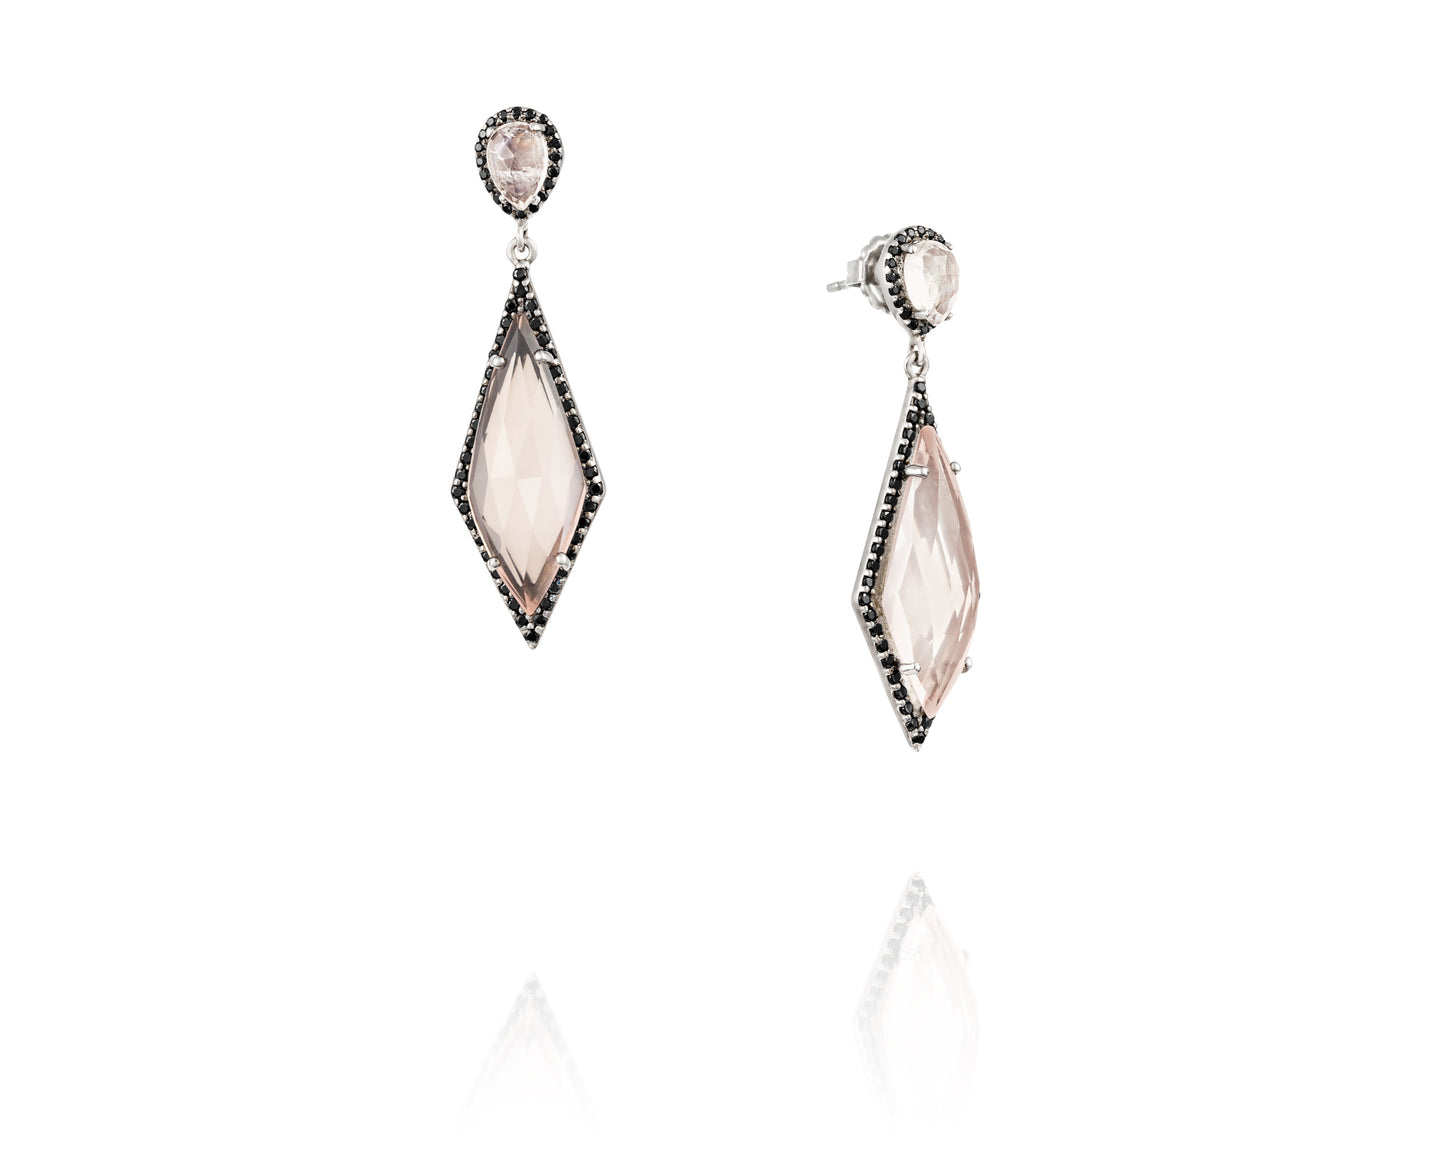 Rose Quartz and Black Spinel Earrings